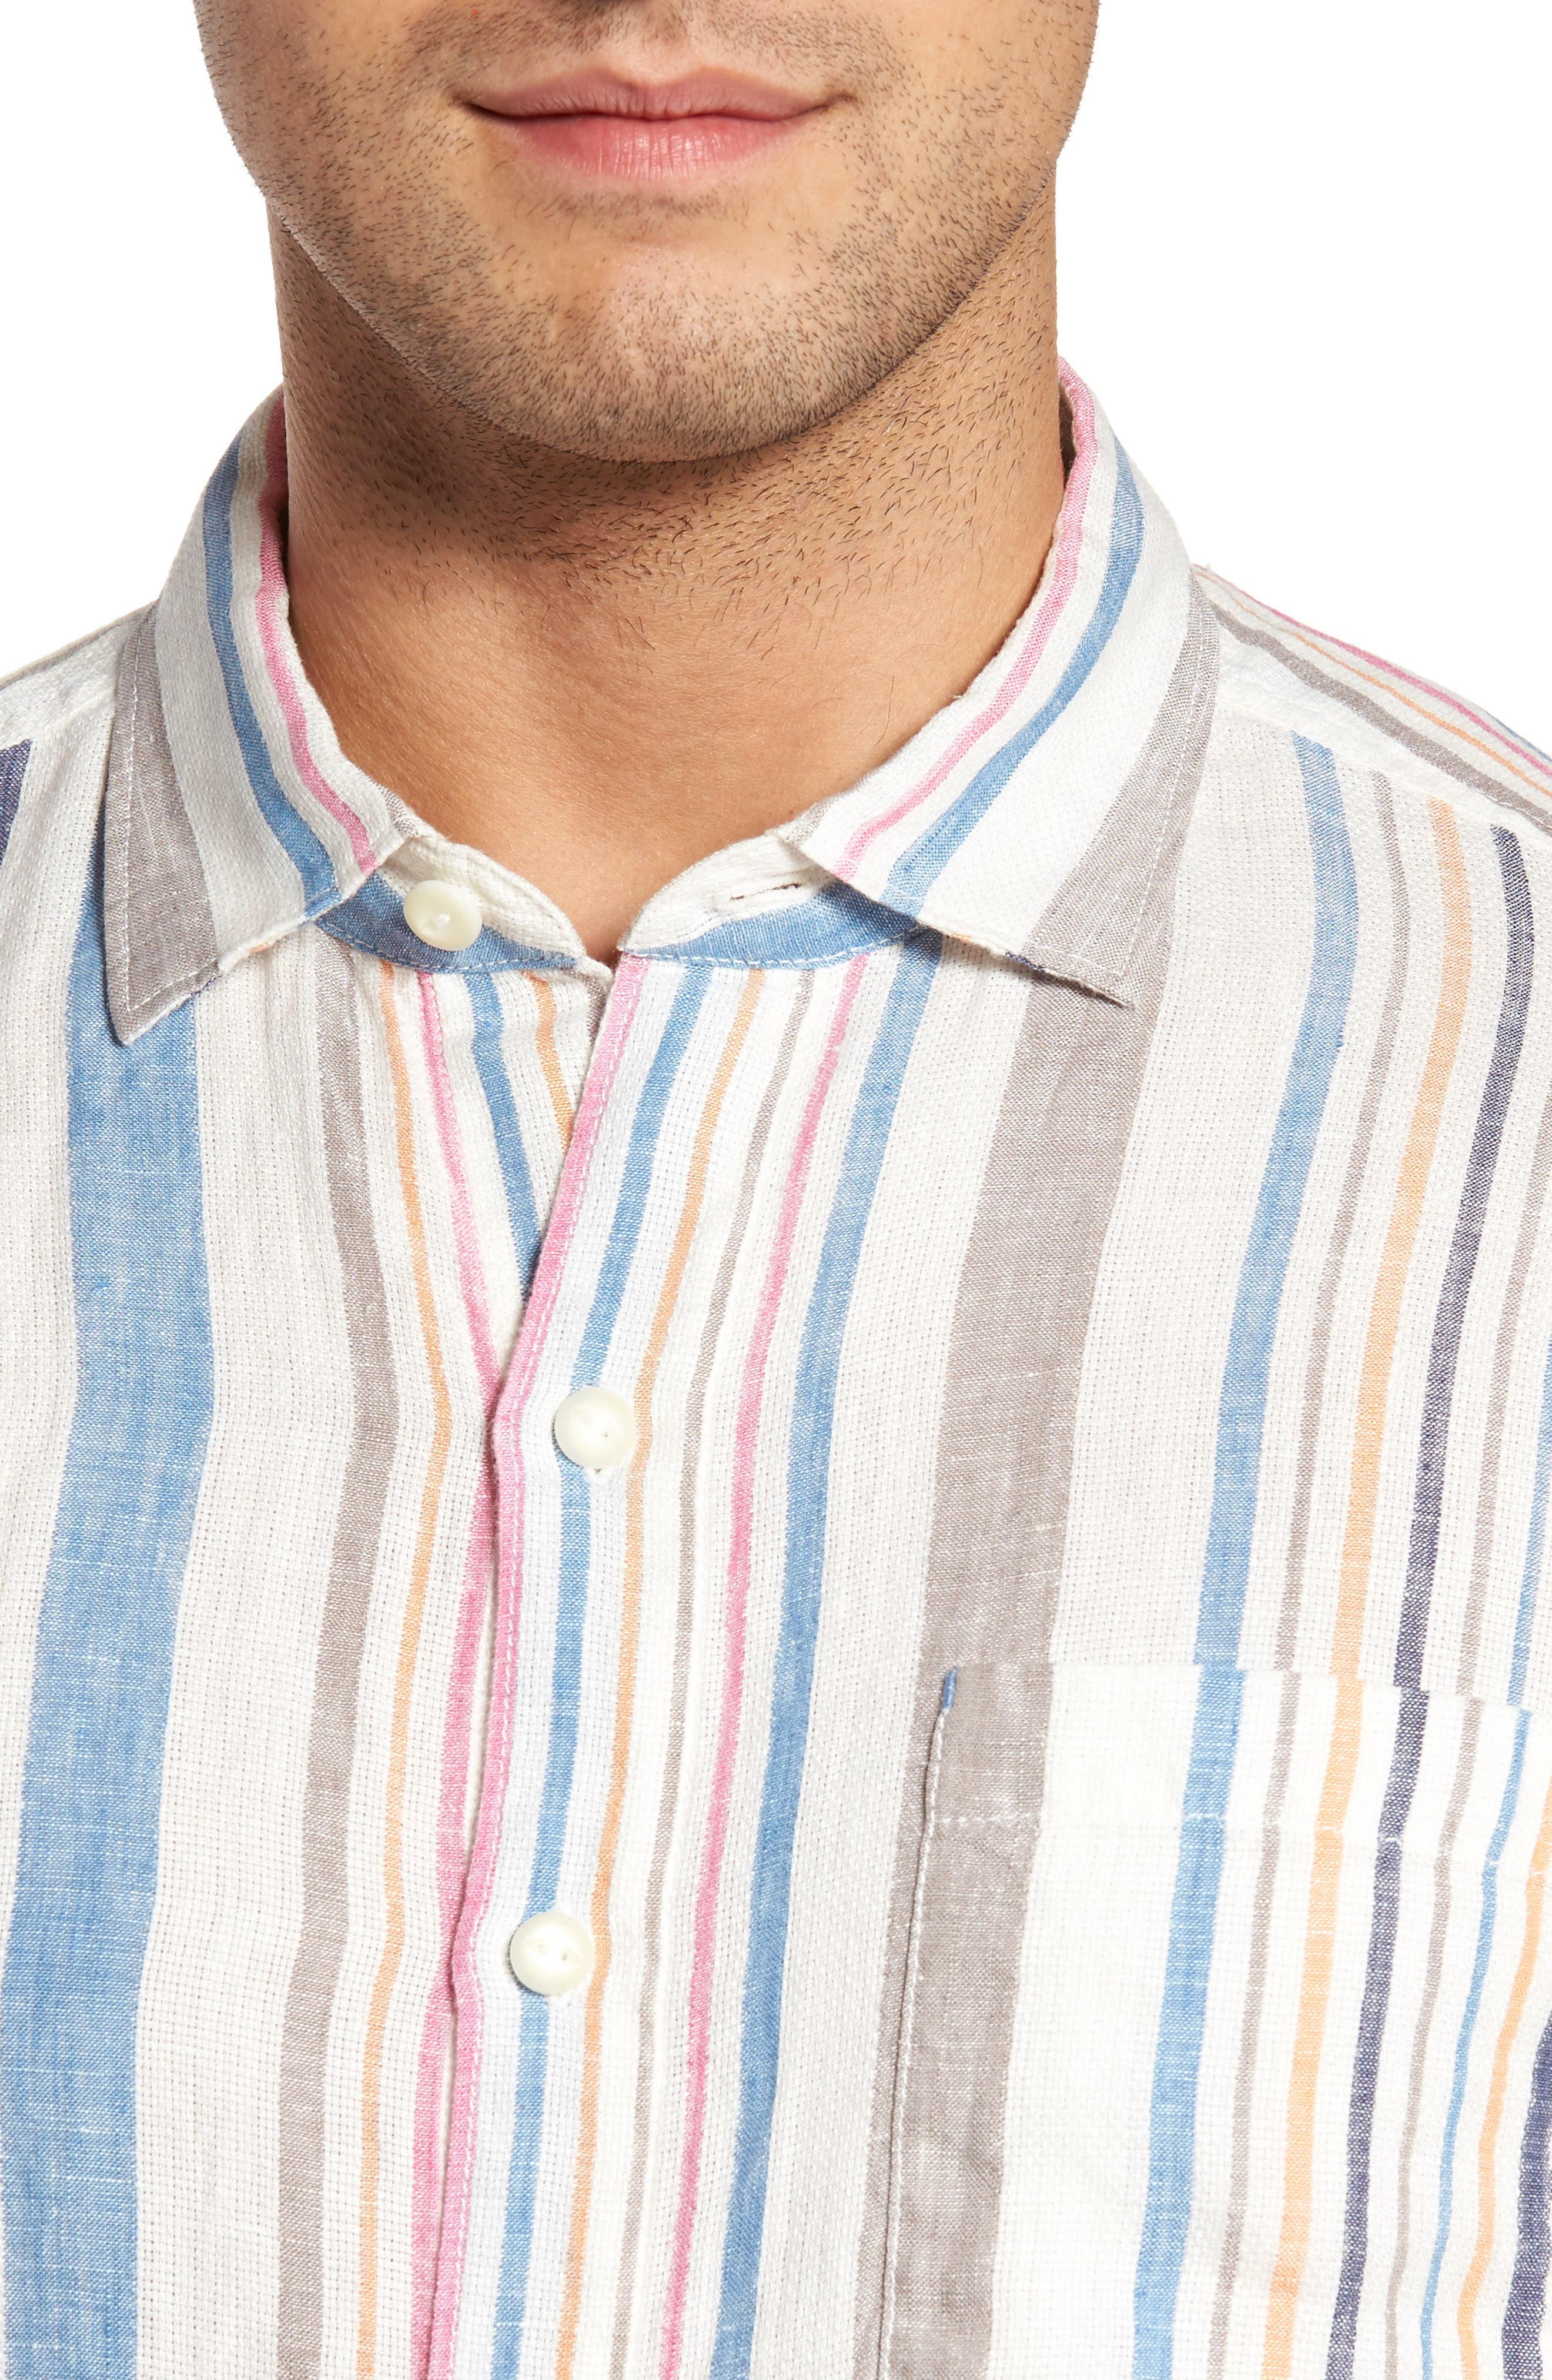 Raffia Stripe Linen Sport Shirt,                             Alternate thumbnail 4, color,                             Kingdom Blue